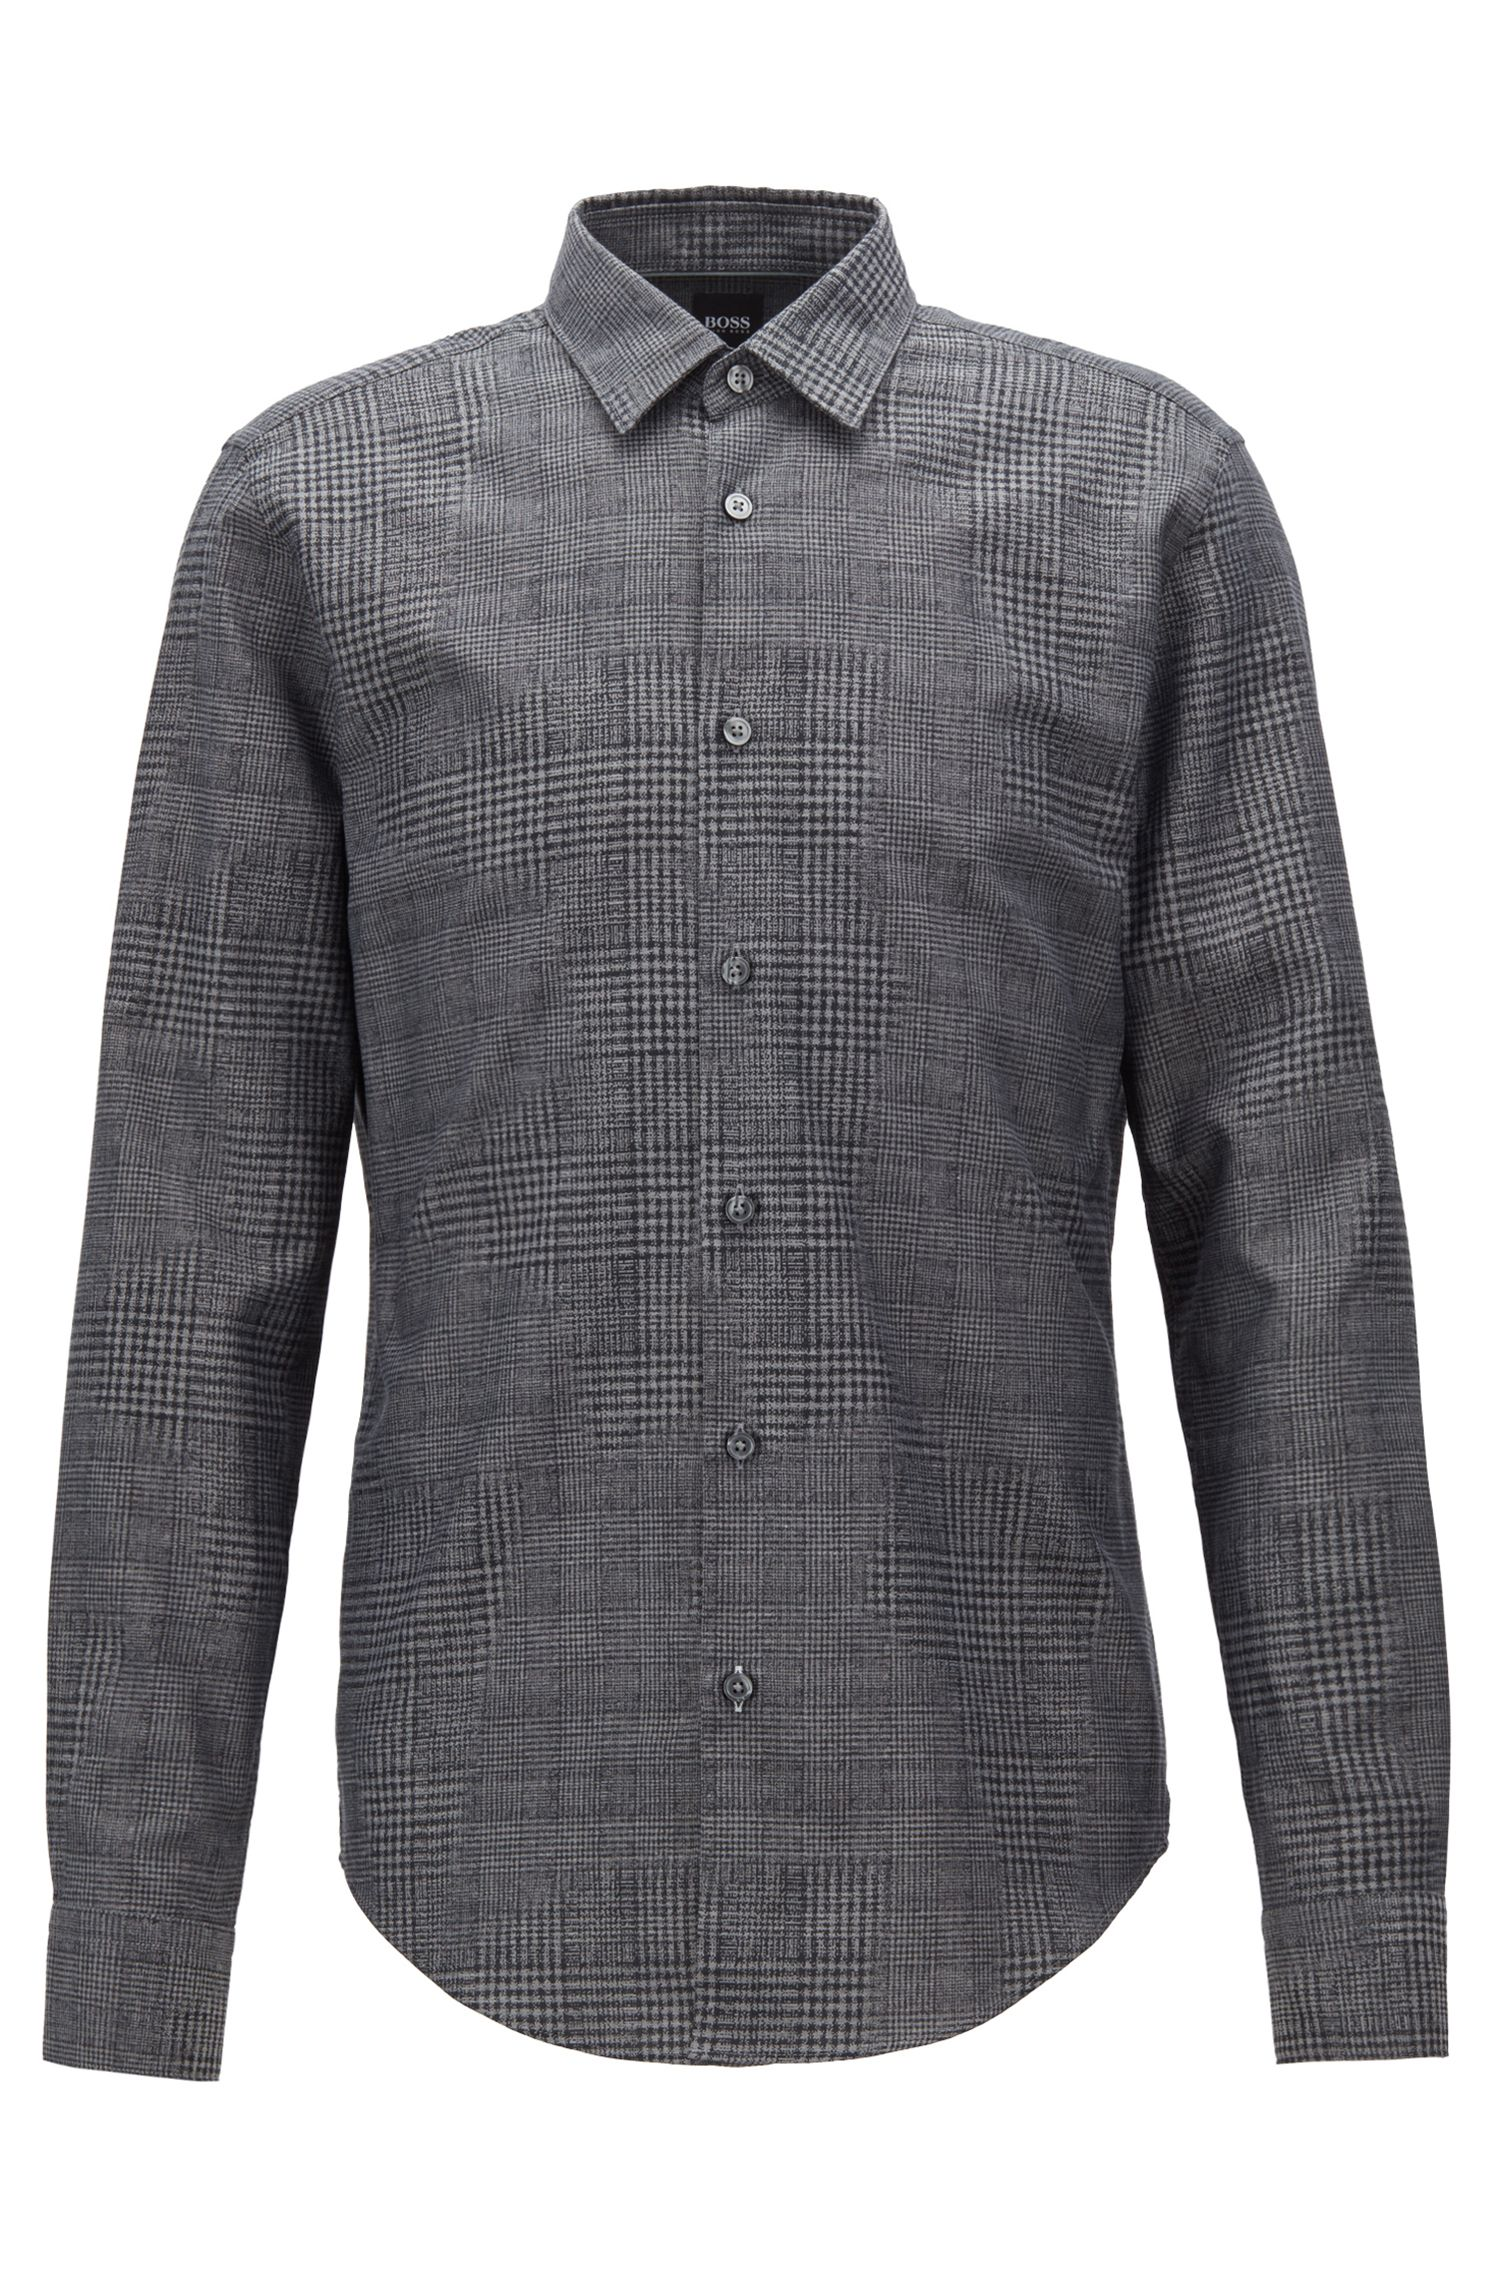 Slim-fit shirt in cotton jacquard with houndstooth patterns, Grey